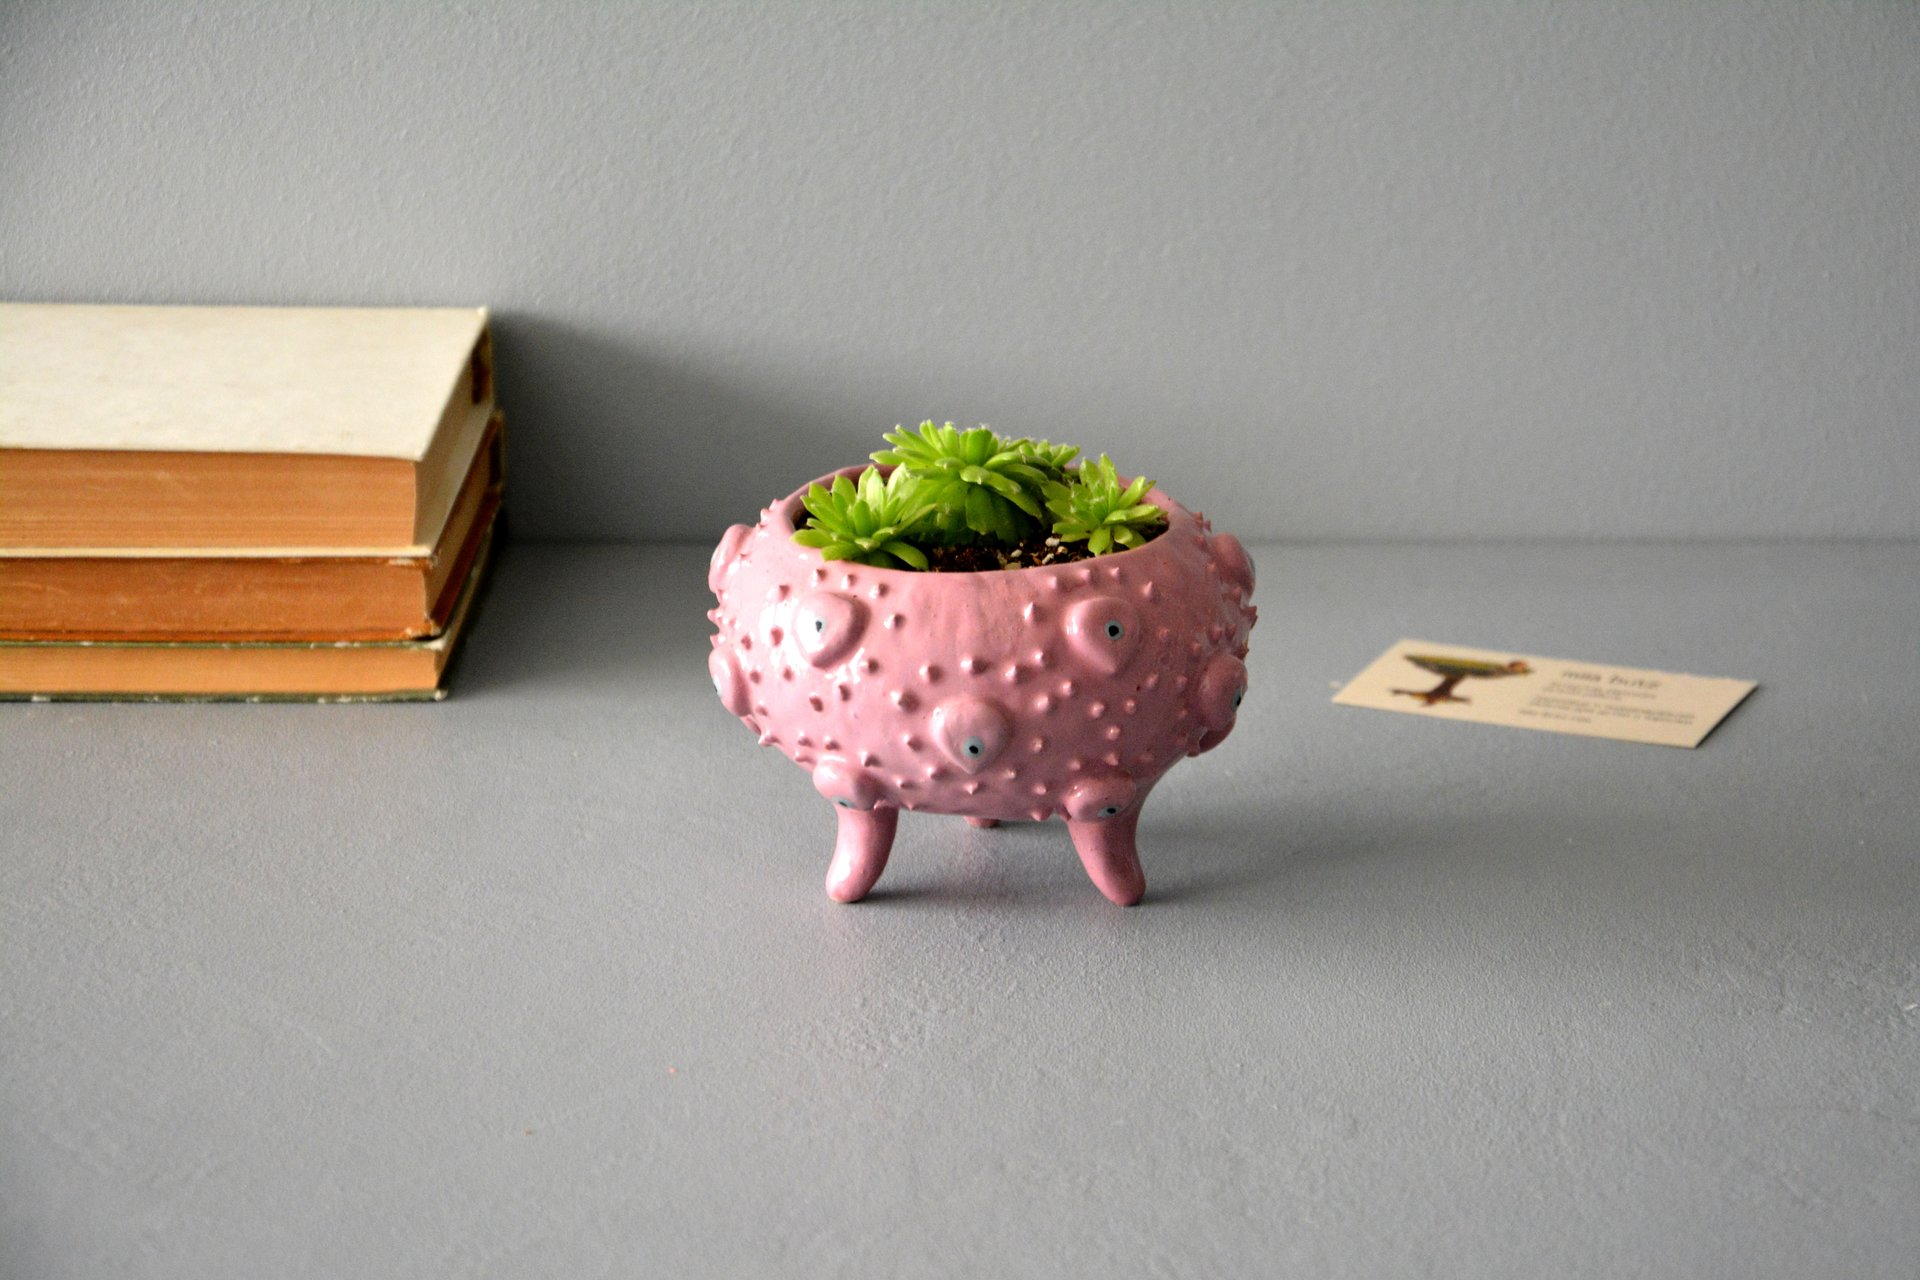 Pink ceramic flower pots for succulents, height - 8,5 cm, diameter (internal) - 8 cm, photo 1 of 4.